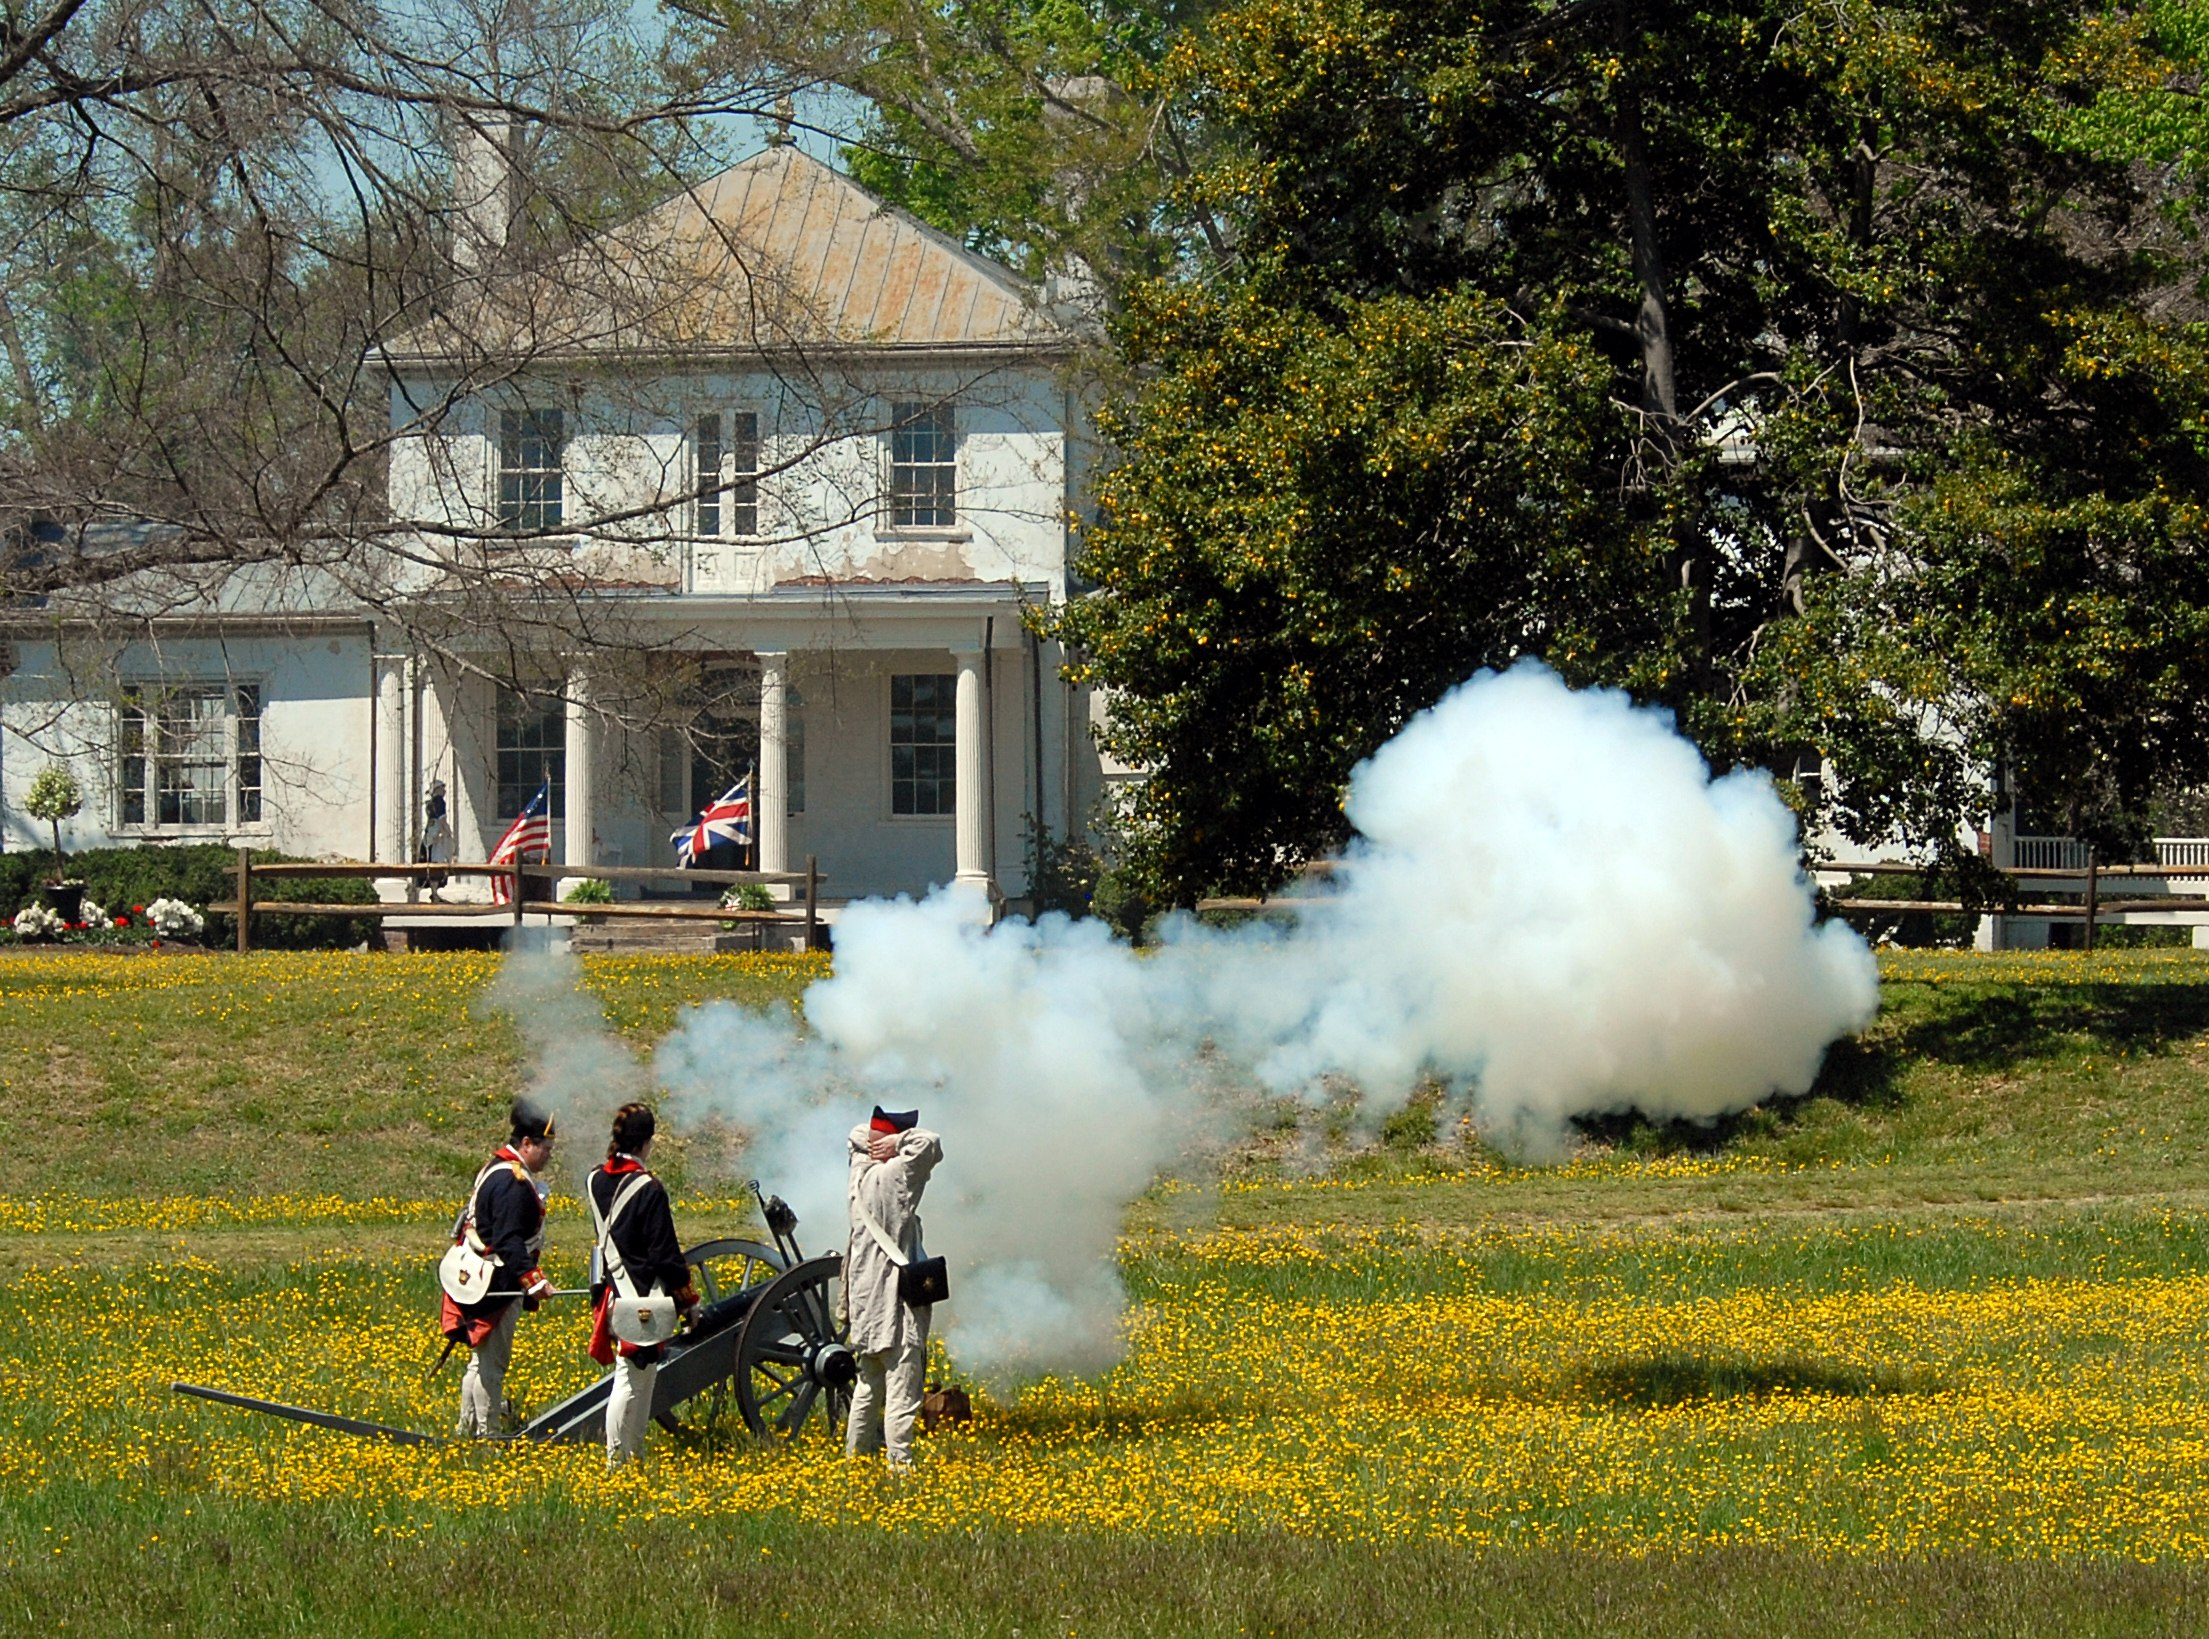 File:Revolutionary War Reenactment Battersea jpg - Wikimedia